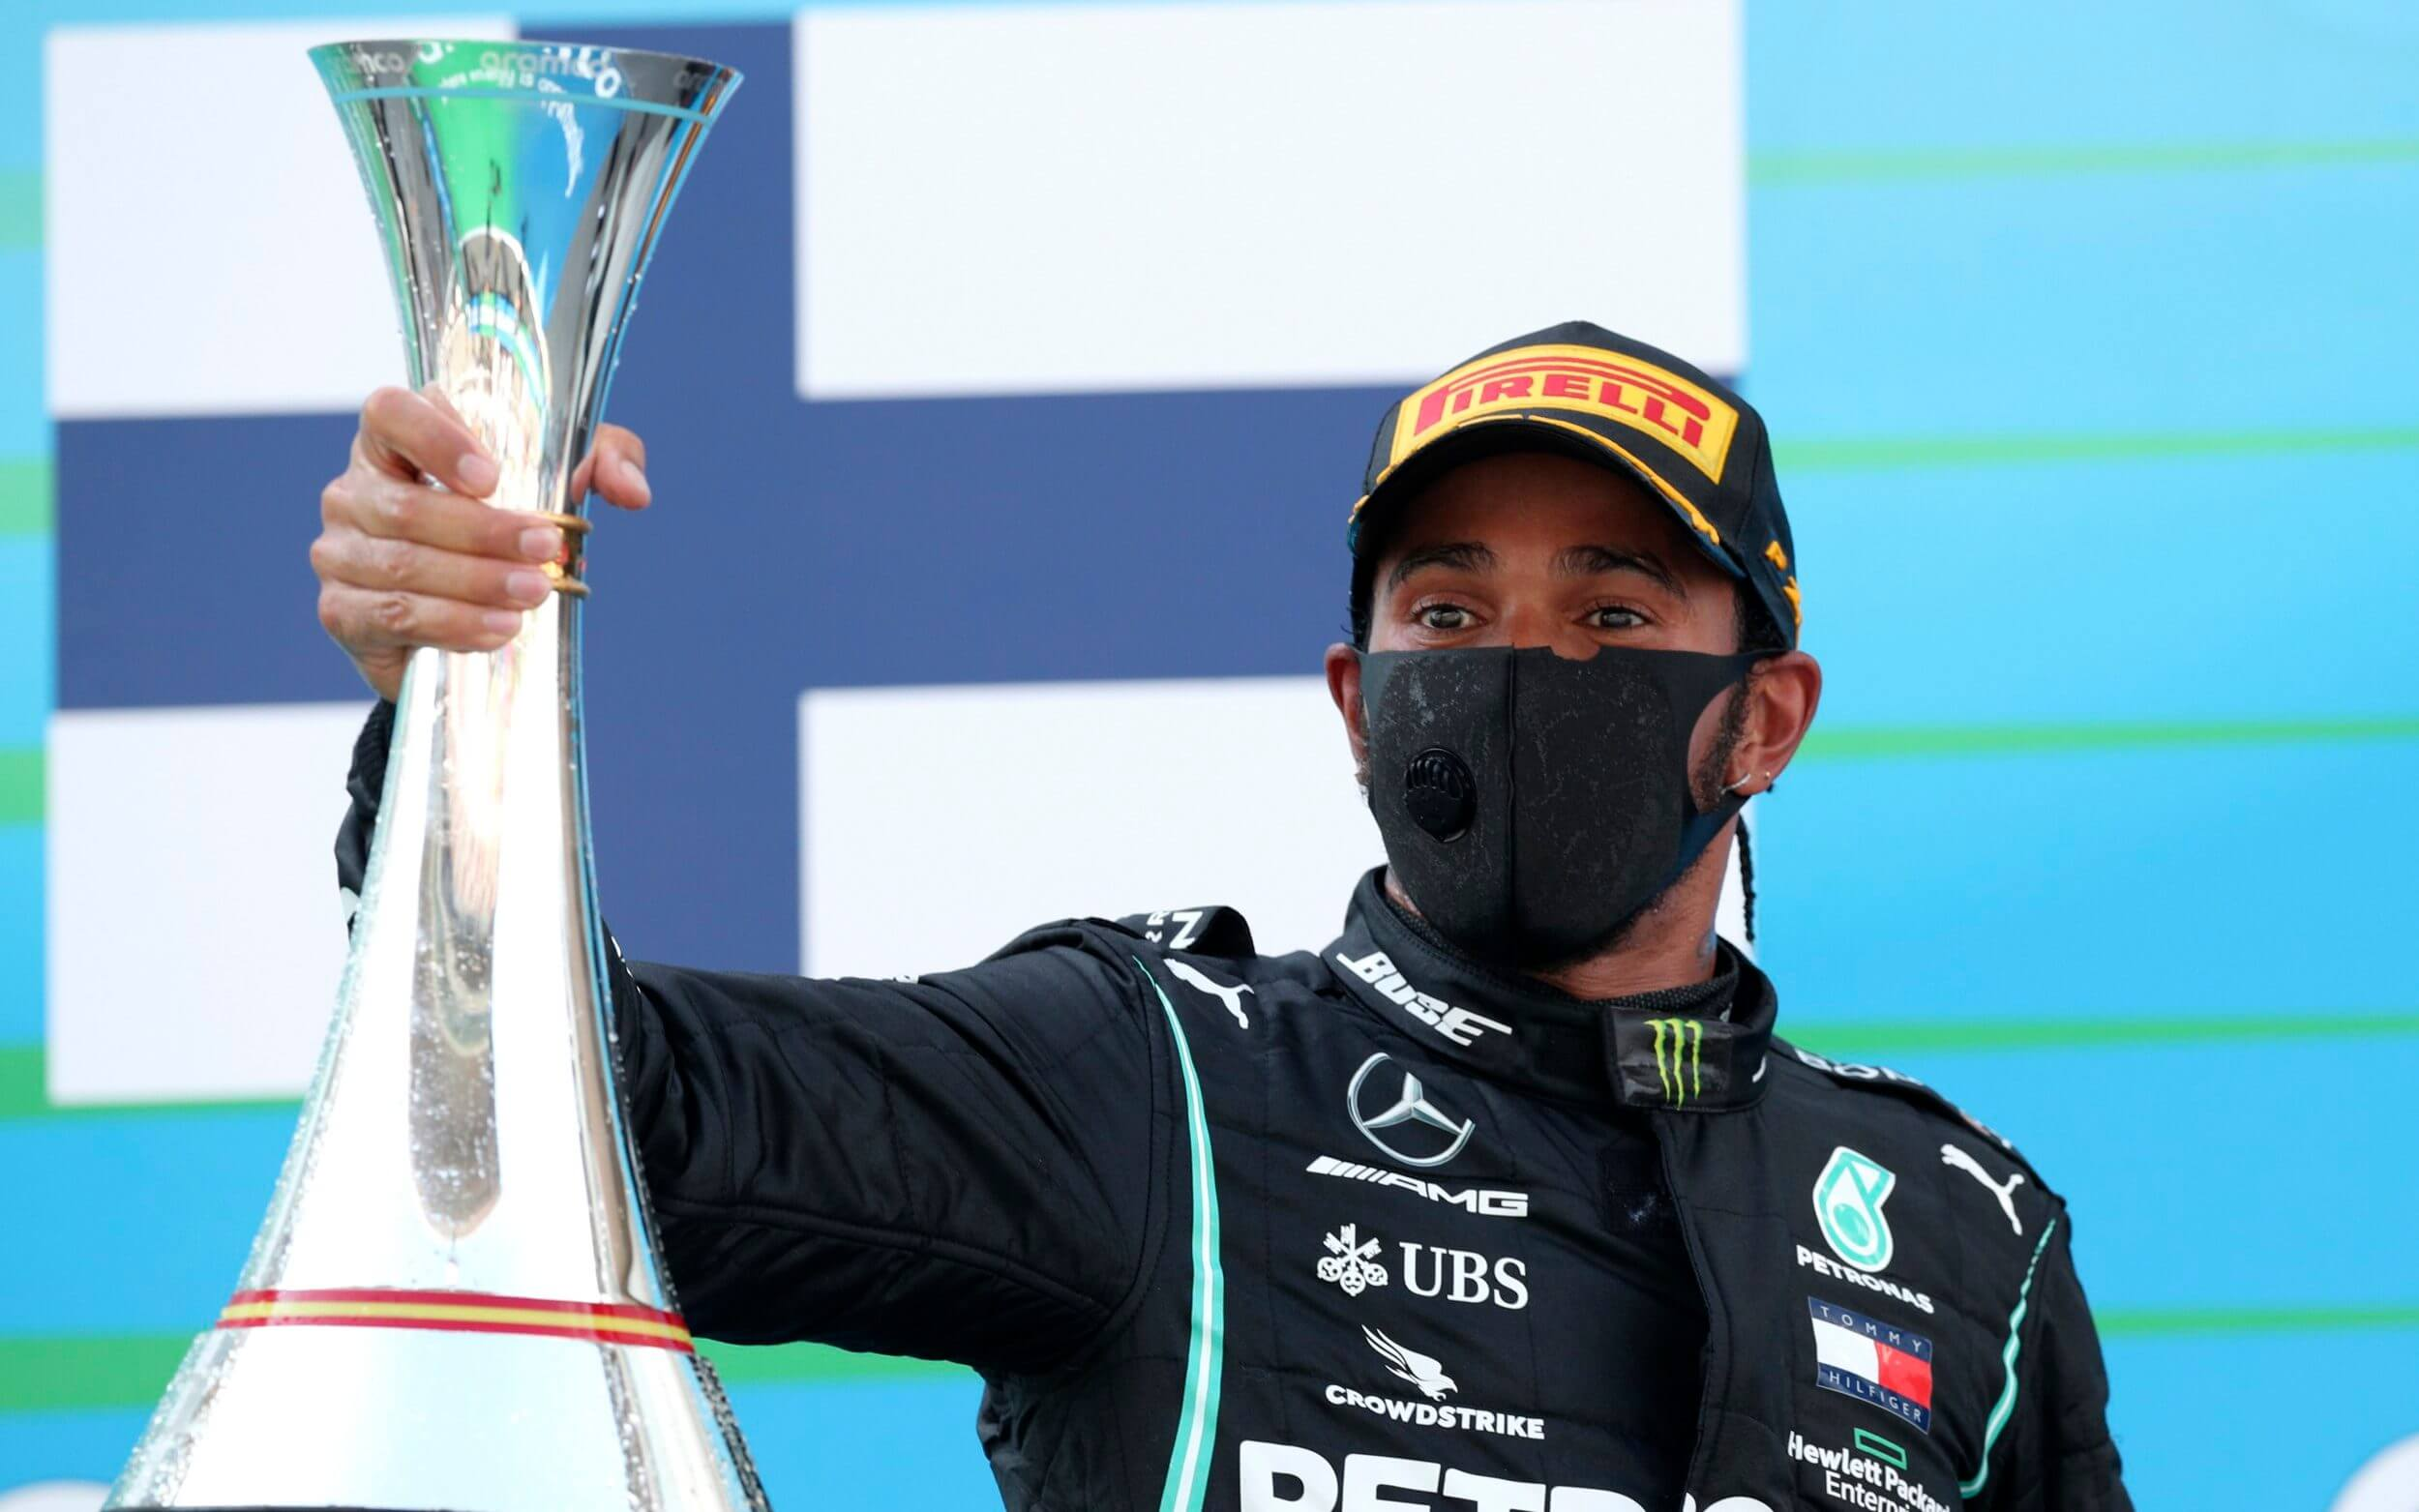 F1: Lewis Hamilton wins 5th straight Spanish Grand Prix